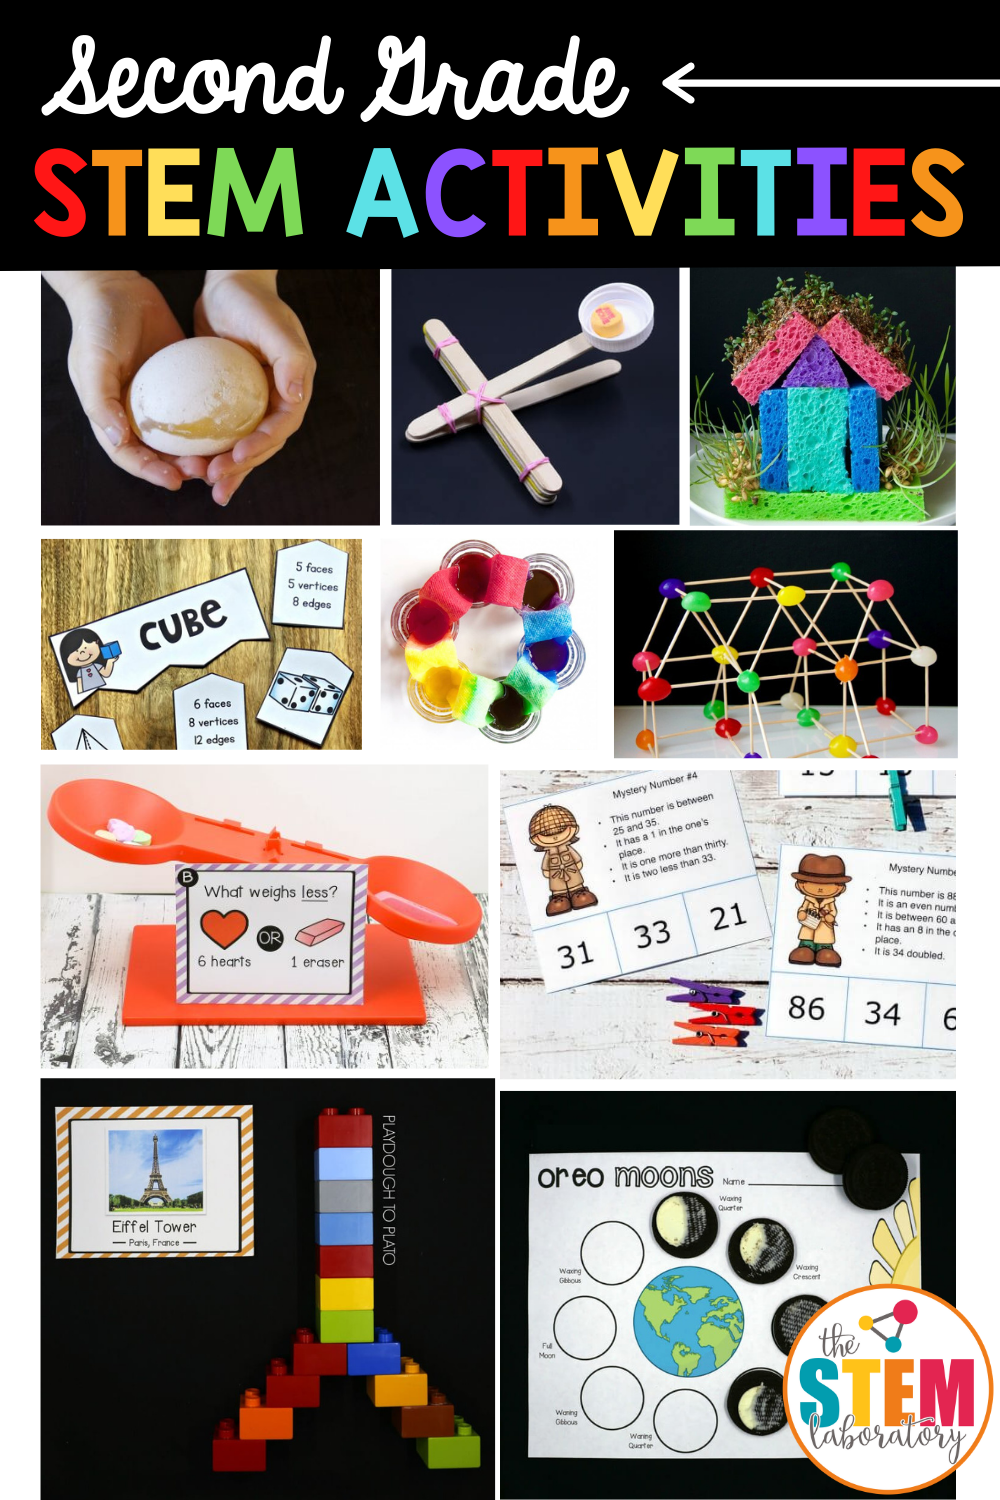 Second Grade STEM Activities